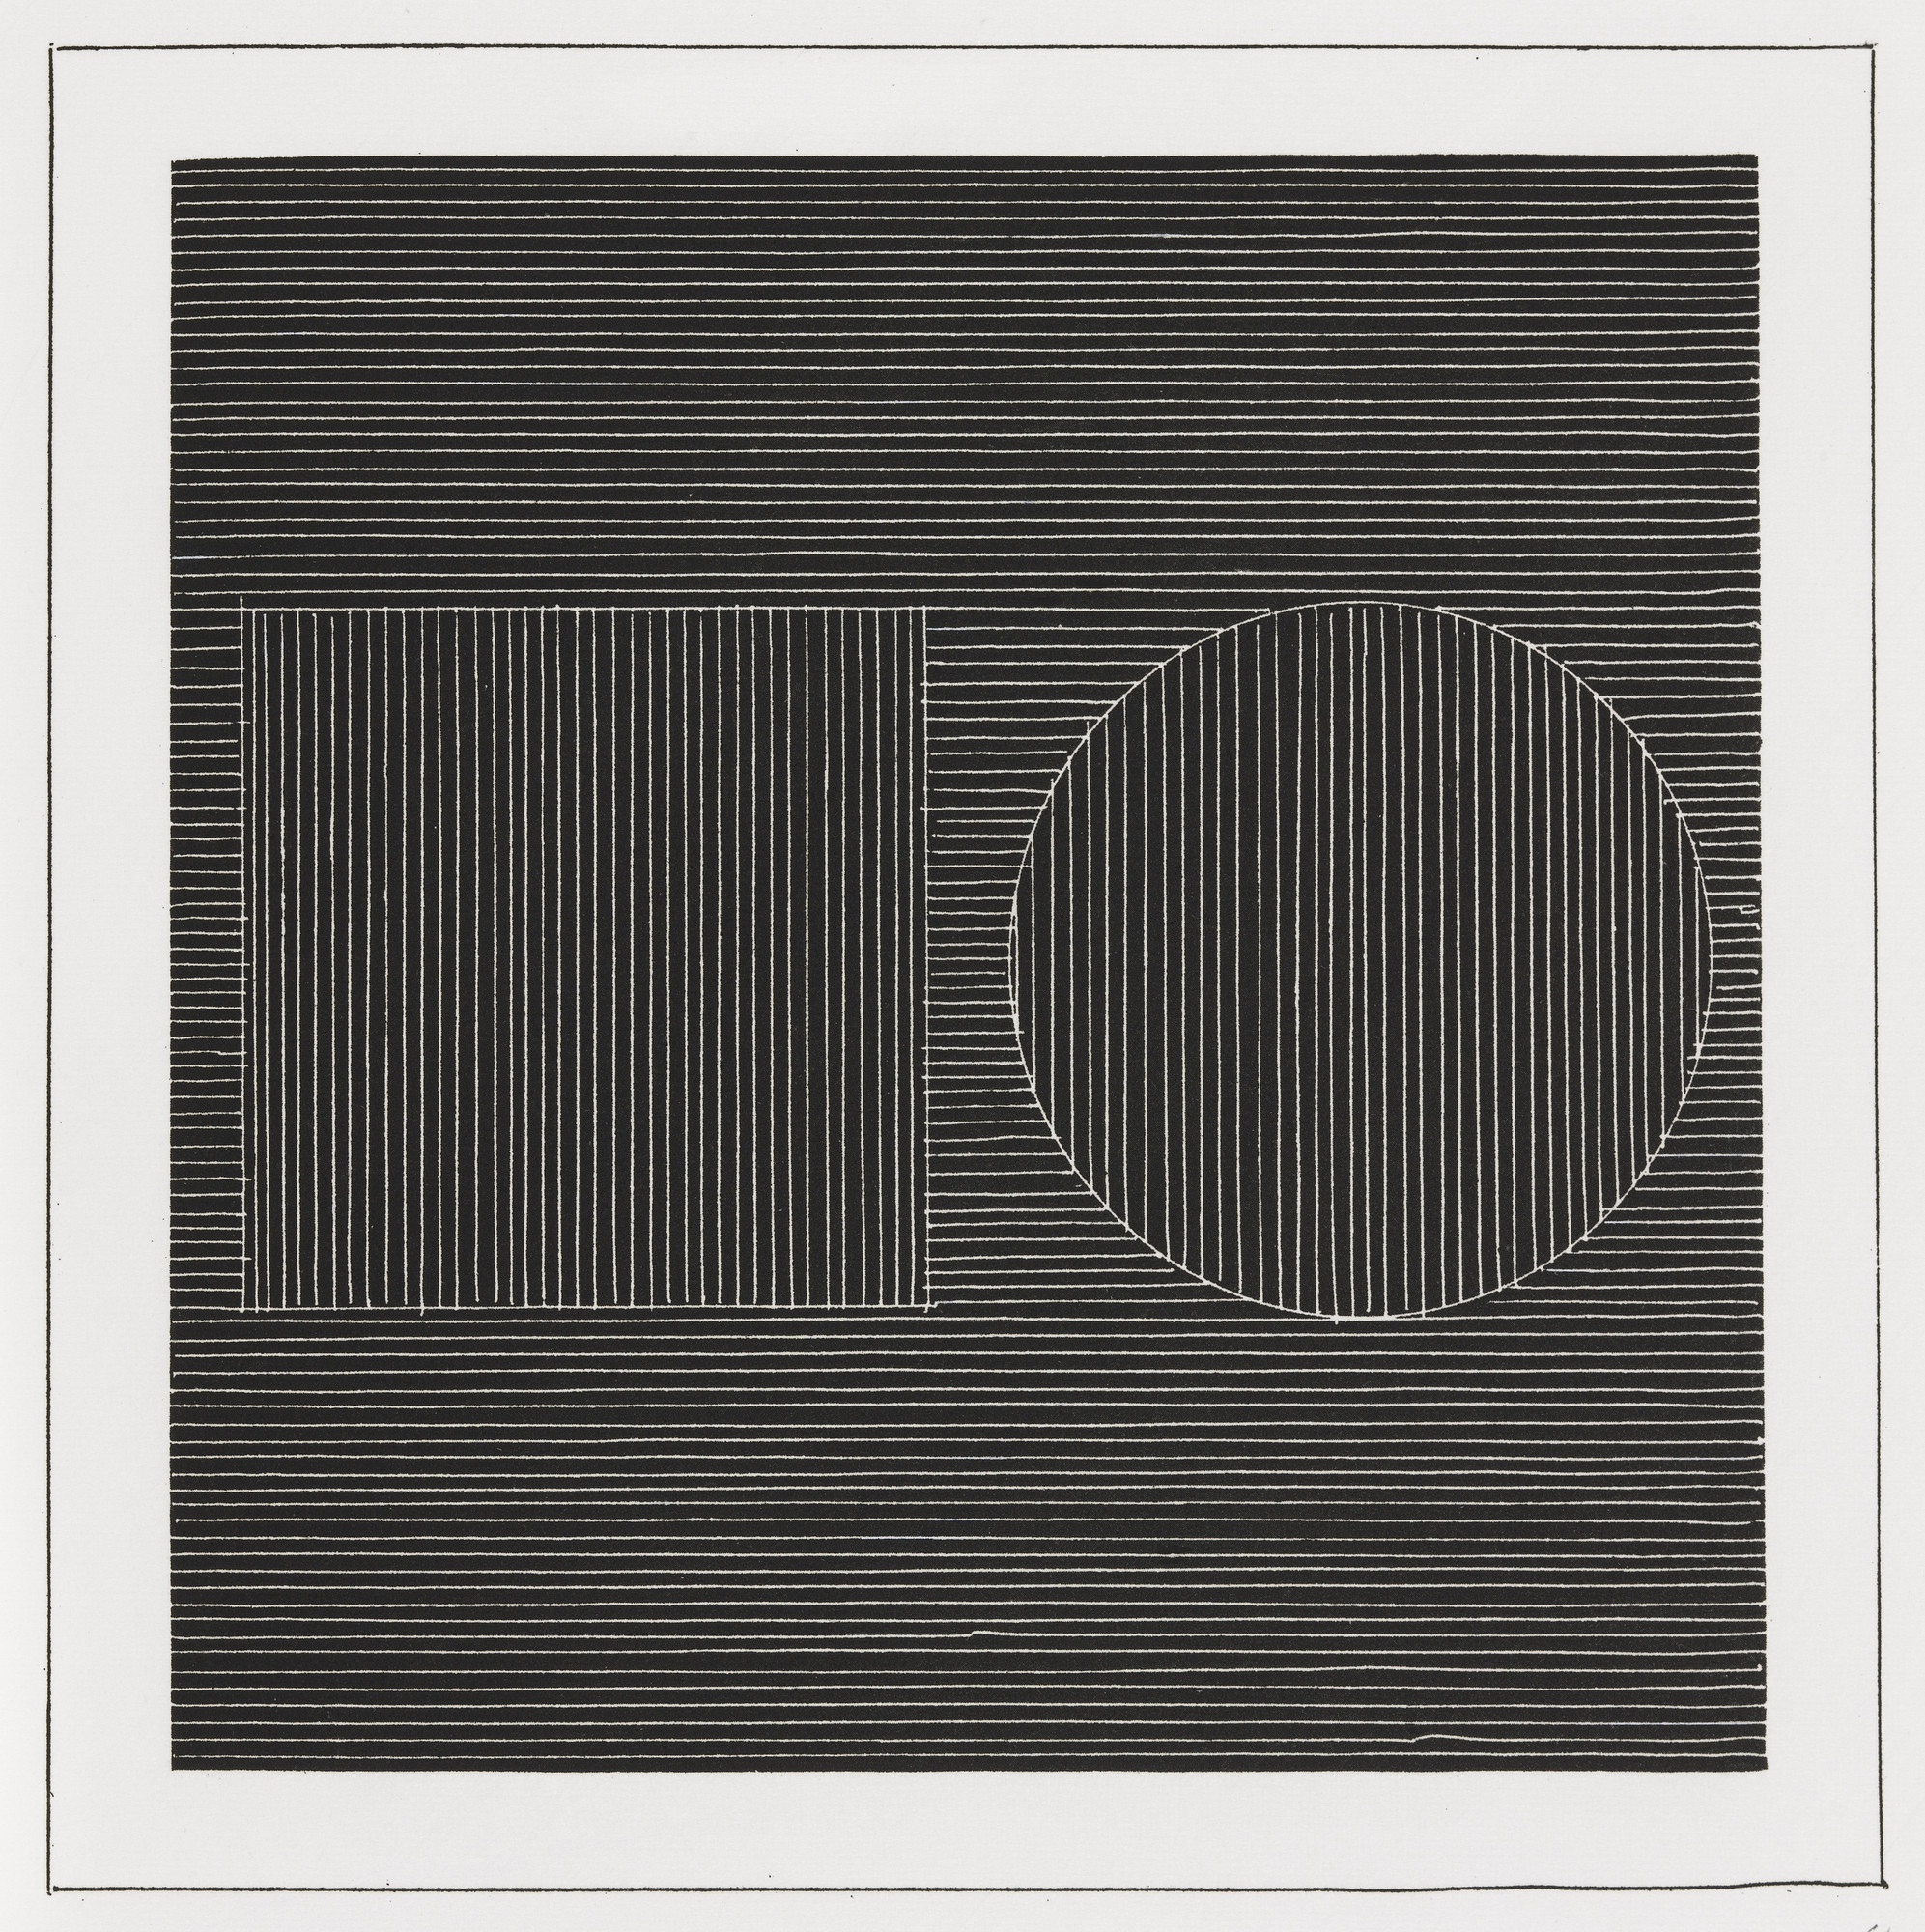 Sol LeWitt. Plate (folio 8) from Six Geometric Figures and All Their Combinations, Volume I. 1980